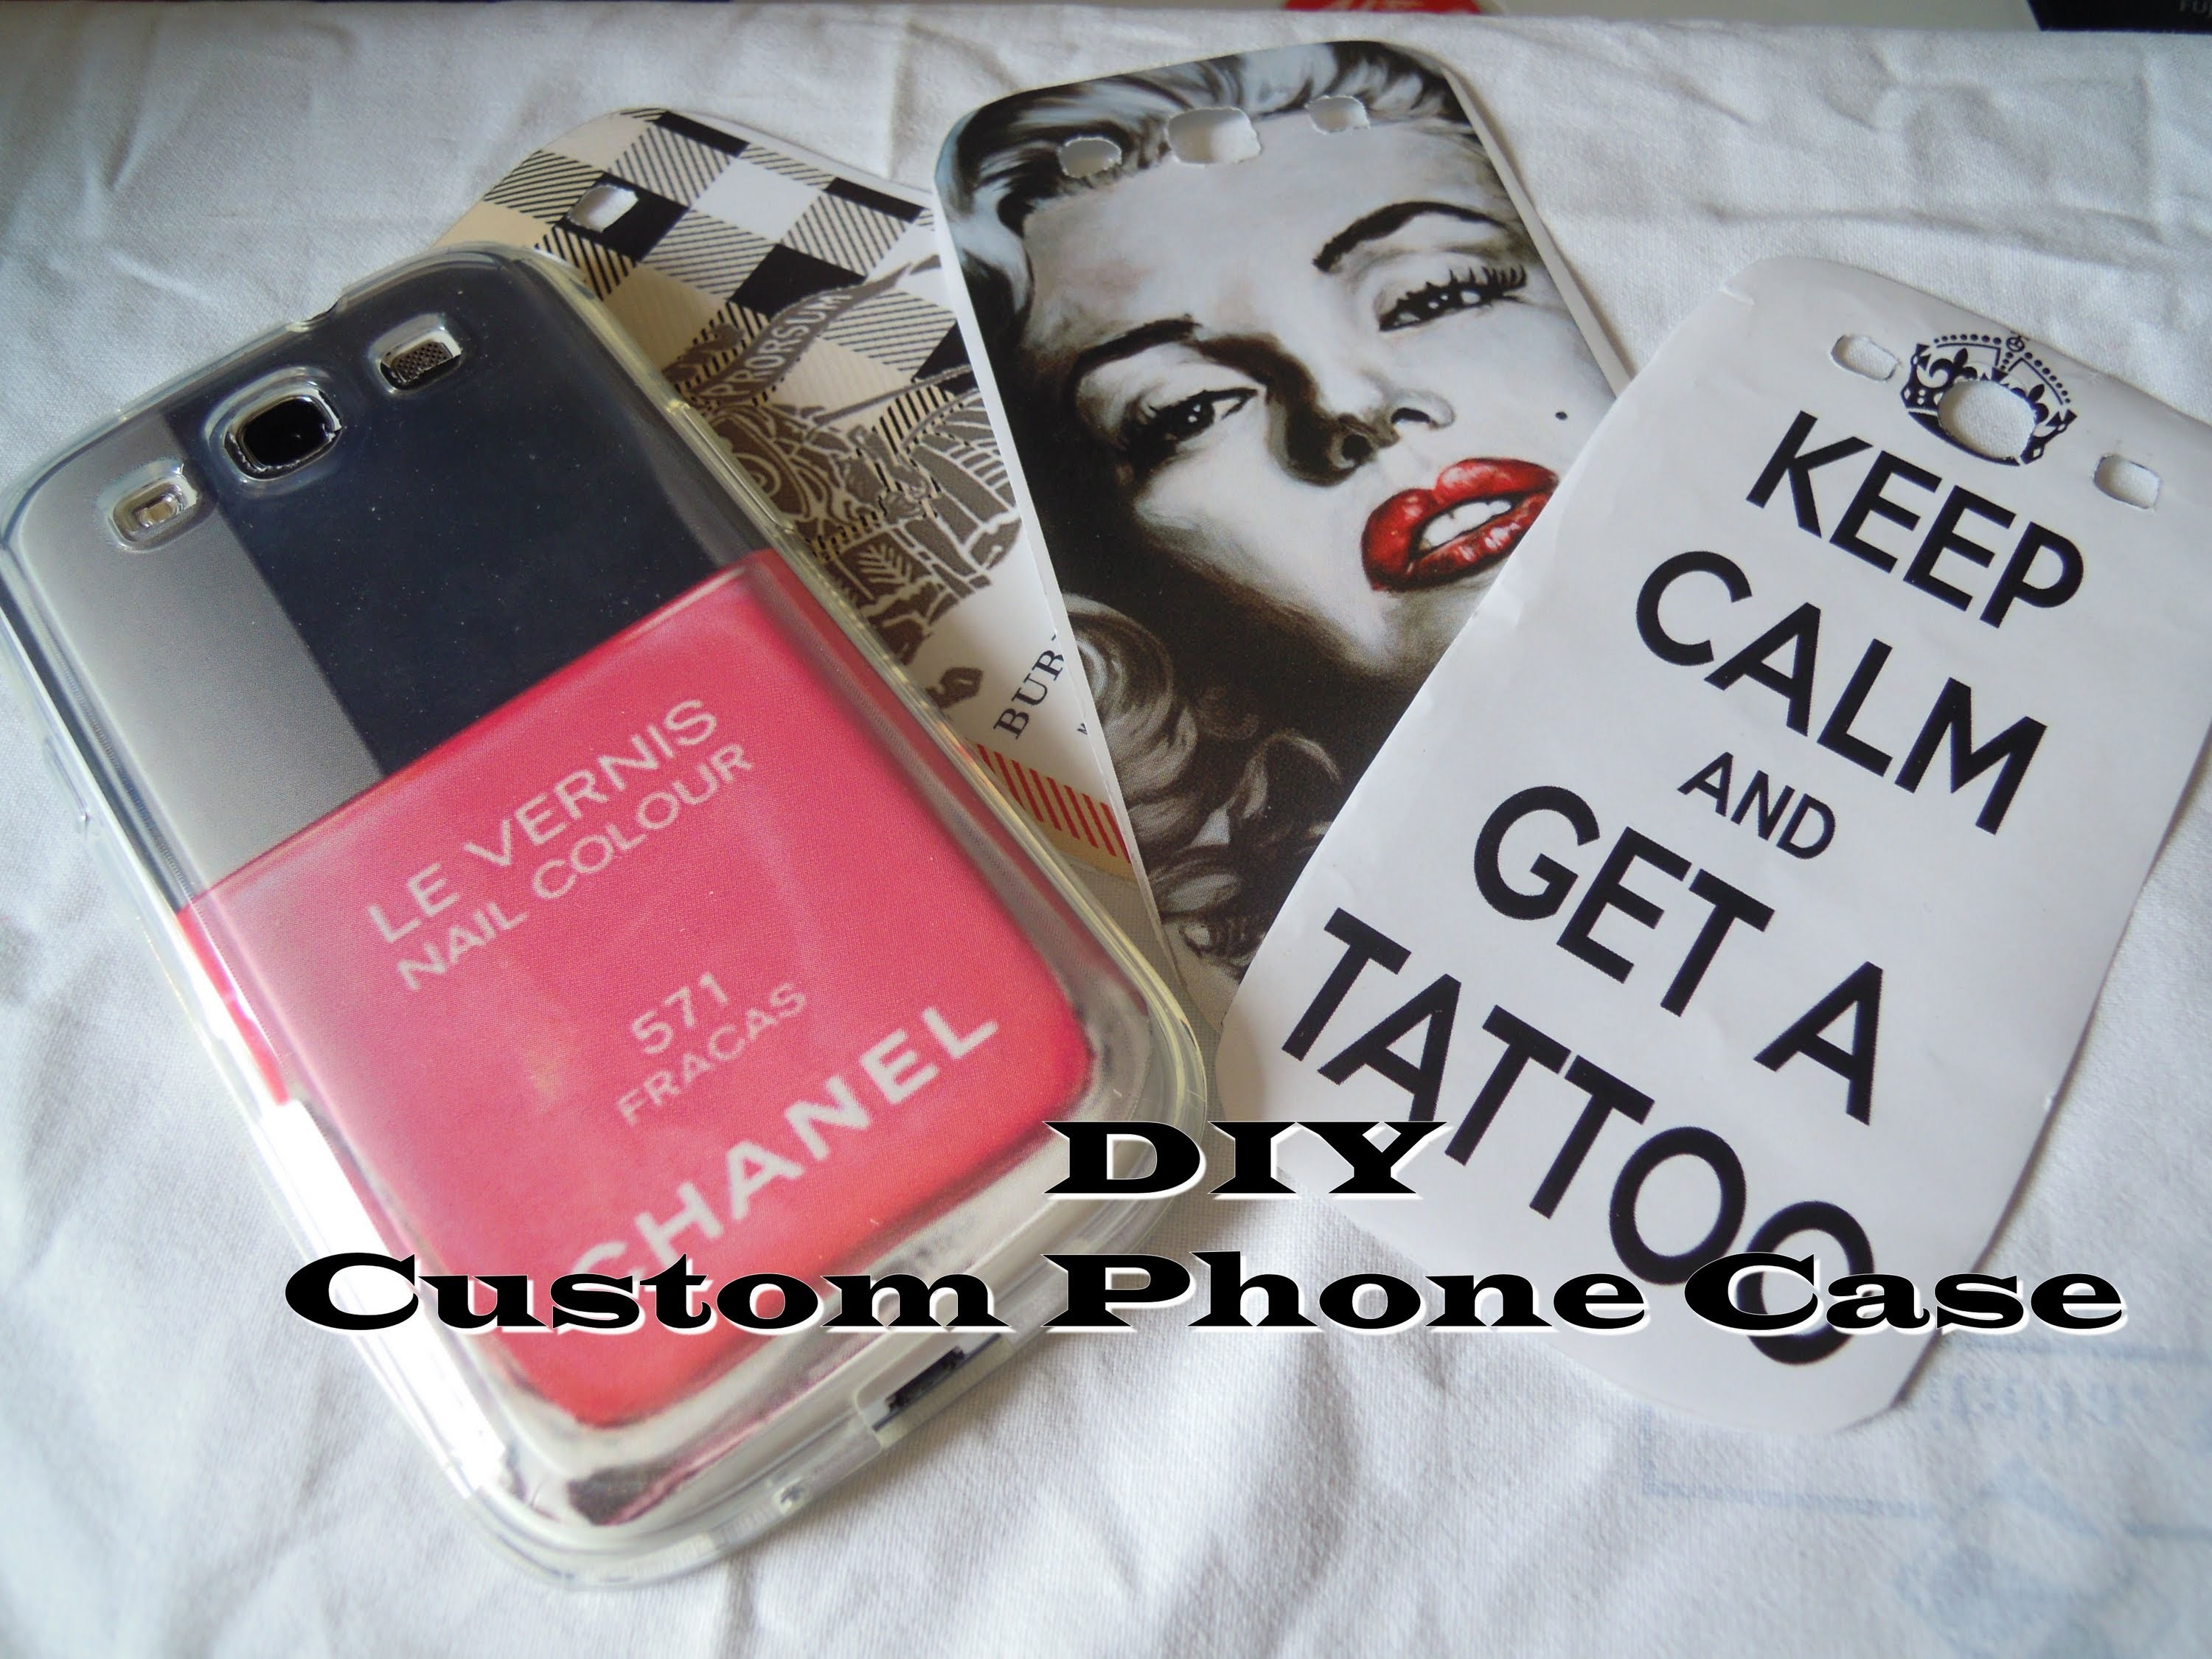 DIY: phone case customized for iphone & galaxy s3